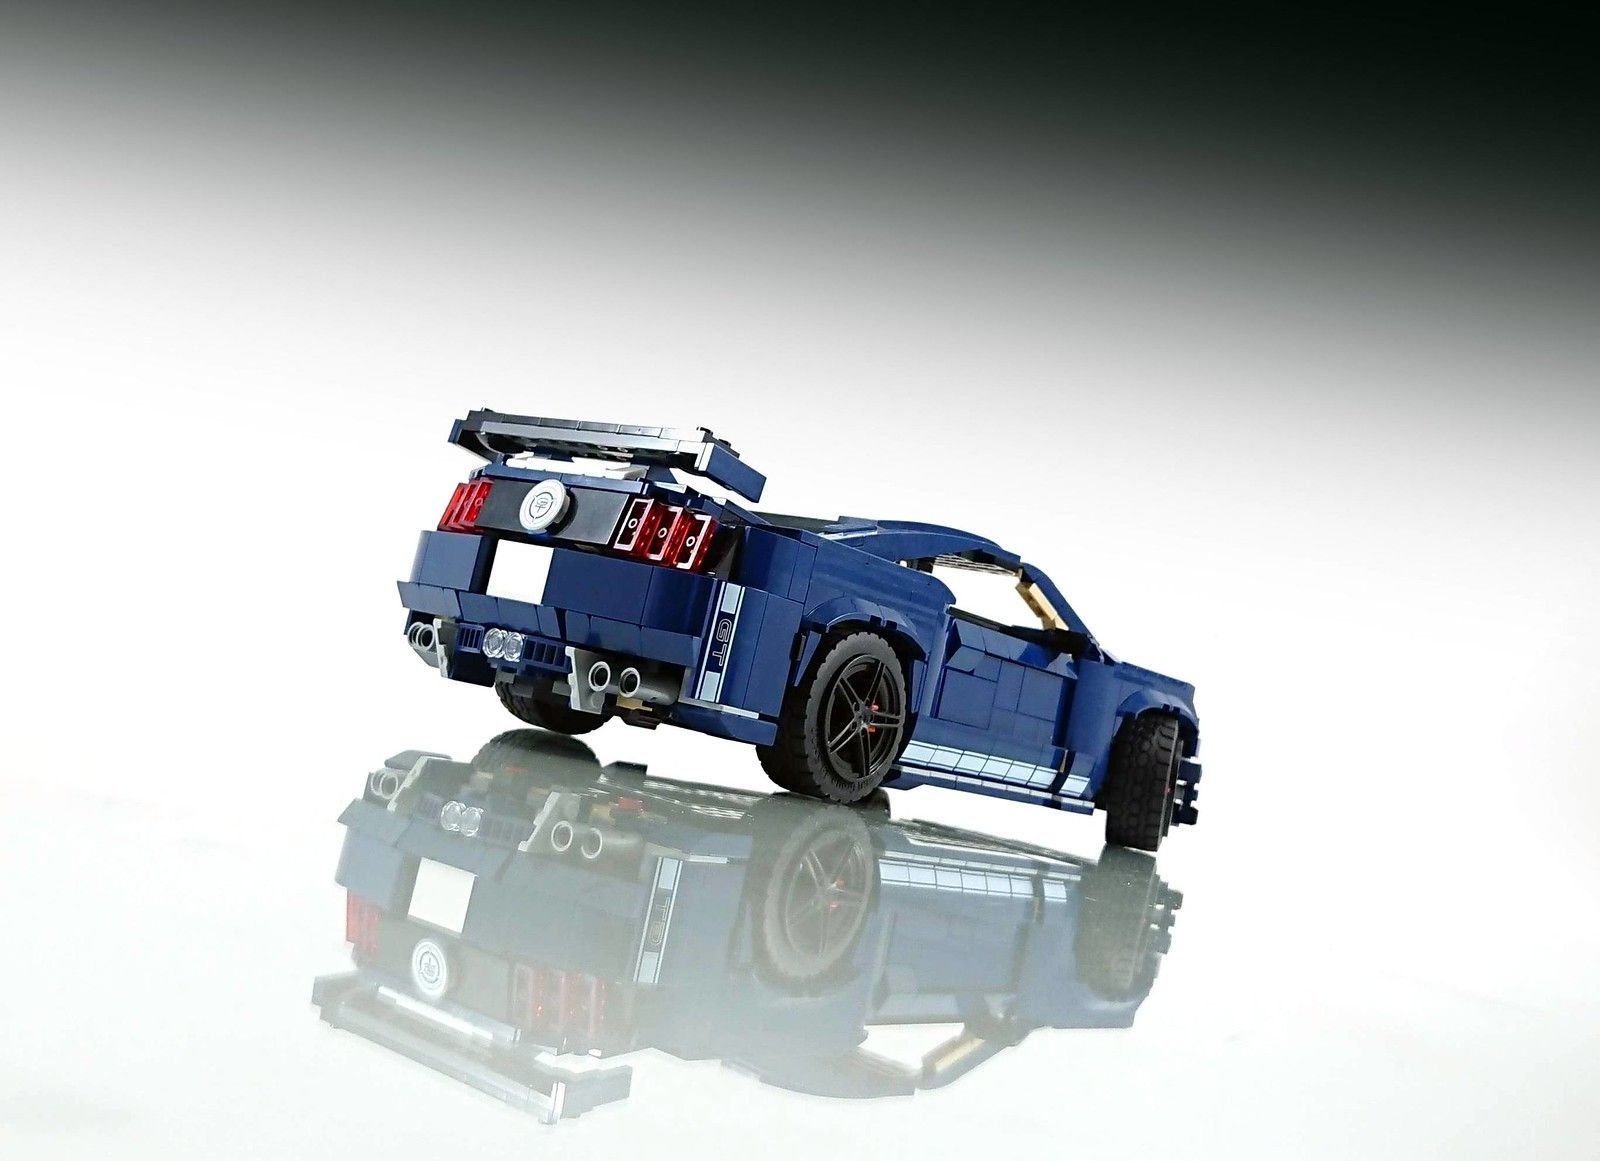 Ford Mustang Shelby GT500 10265 Model B MOC        Ford Mustang Shelby GT500 10265 Modell B MOC | H